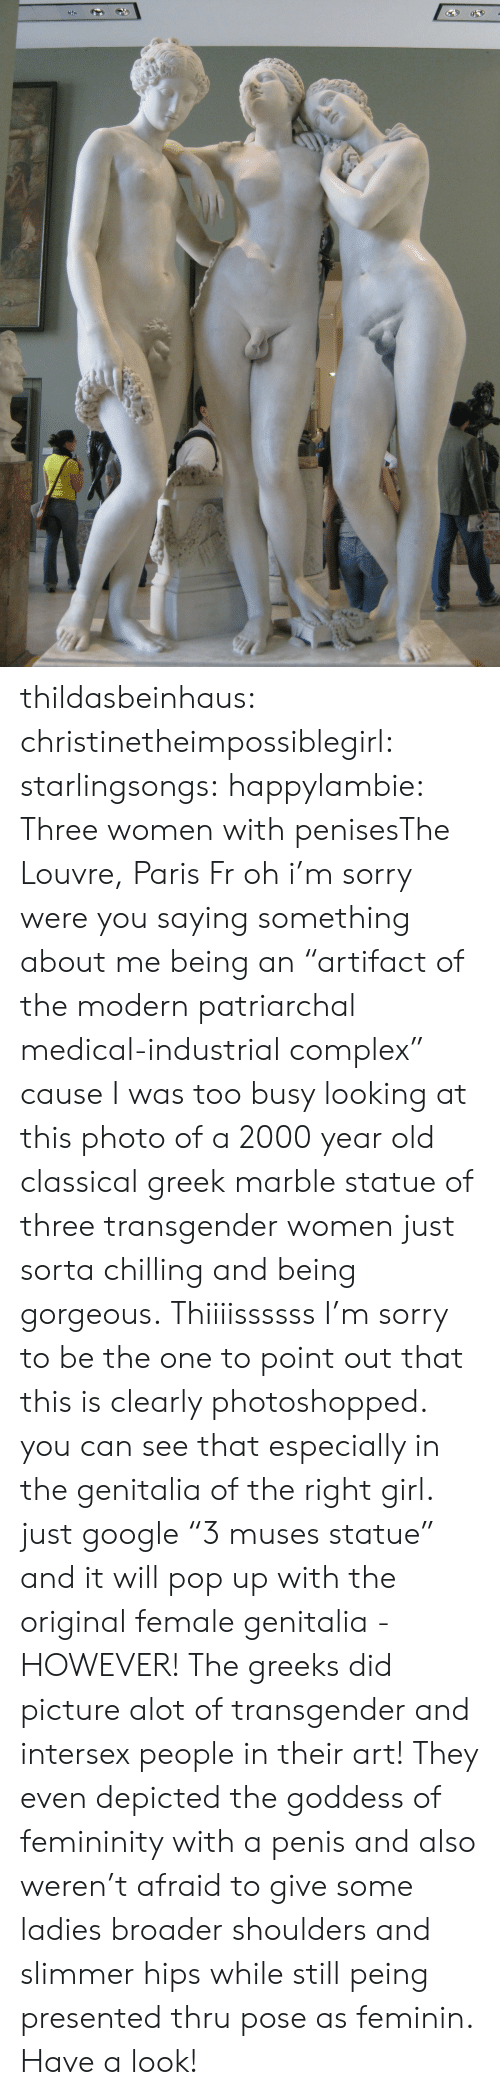 "Have A Look: thildasbeinhaus:  christinetheimpossiblegirl:  starlingsongs:  happylambie:  Three women with penisesThe Louvre, Paris Fr  oh i'm sorry were you saying something about me being an ""artifact of the modern patriarchal medical-industrial complex"" cause I was too busy looking at this photo of a 2000 year old classical greek marble statue of three transgender women just sorta chilling and being gorgeous.  Thiiiissssss  I'm sorry to be the one to point out that this is clearly photoshopped. you can see that especially in the genitalia of the right girl. just google ""3 muses statue"" and it will pop up with the original female genitalia - HOWEVER! The greeks did picture alot of transgender and intersex people in their art! They even depicted the goddess of femininity with a penis and also weren't afraid to give some ladies broader shoulders and slimmer hips while still peing presented thru pose as feminin. Have a look!"